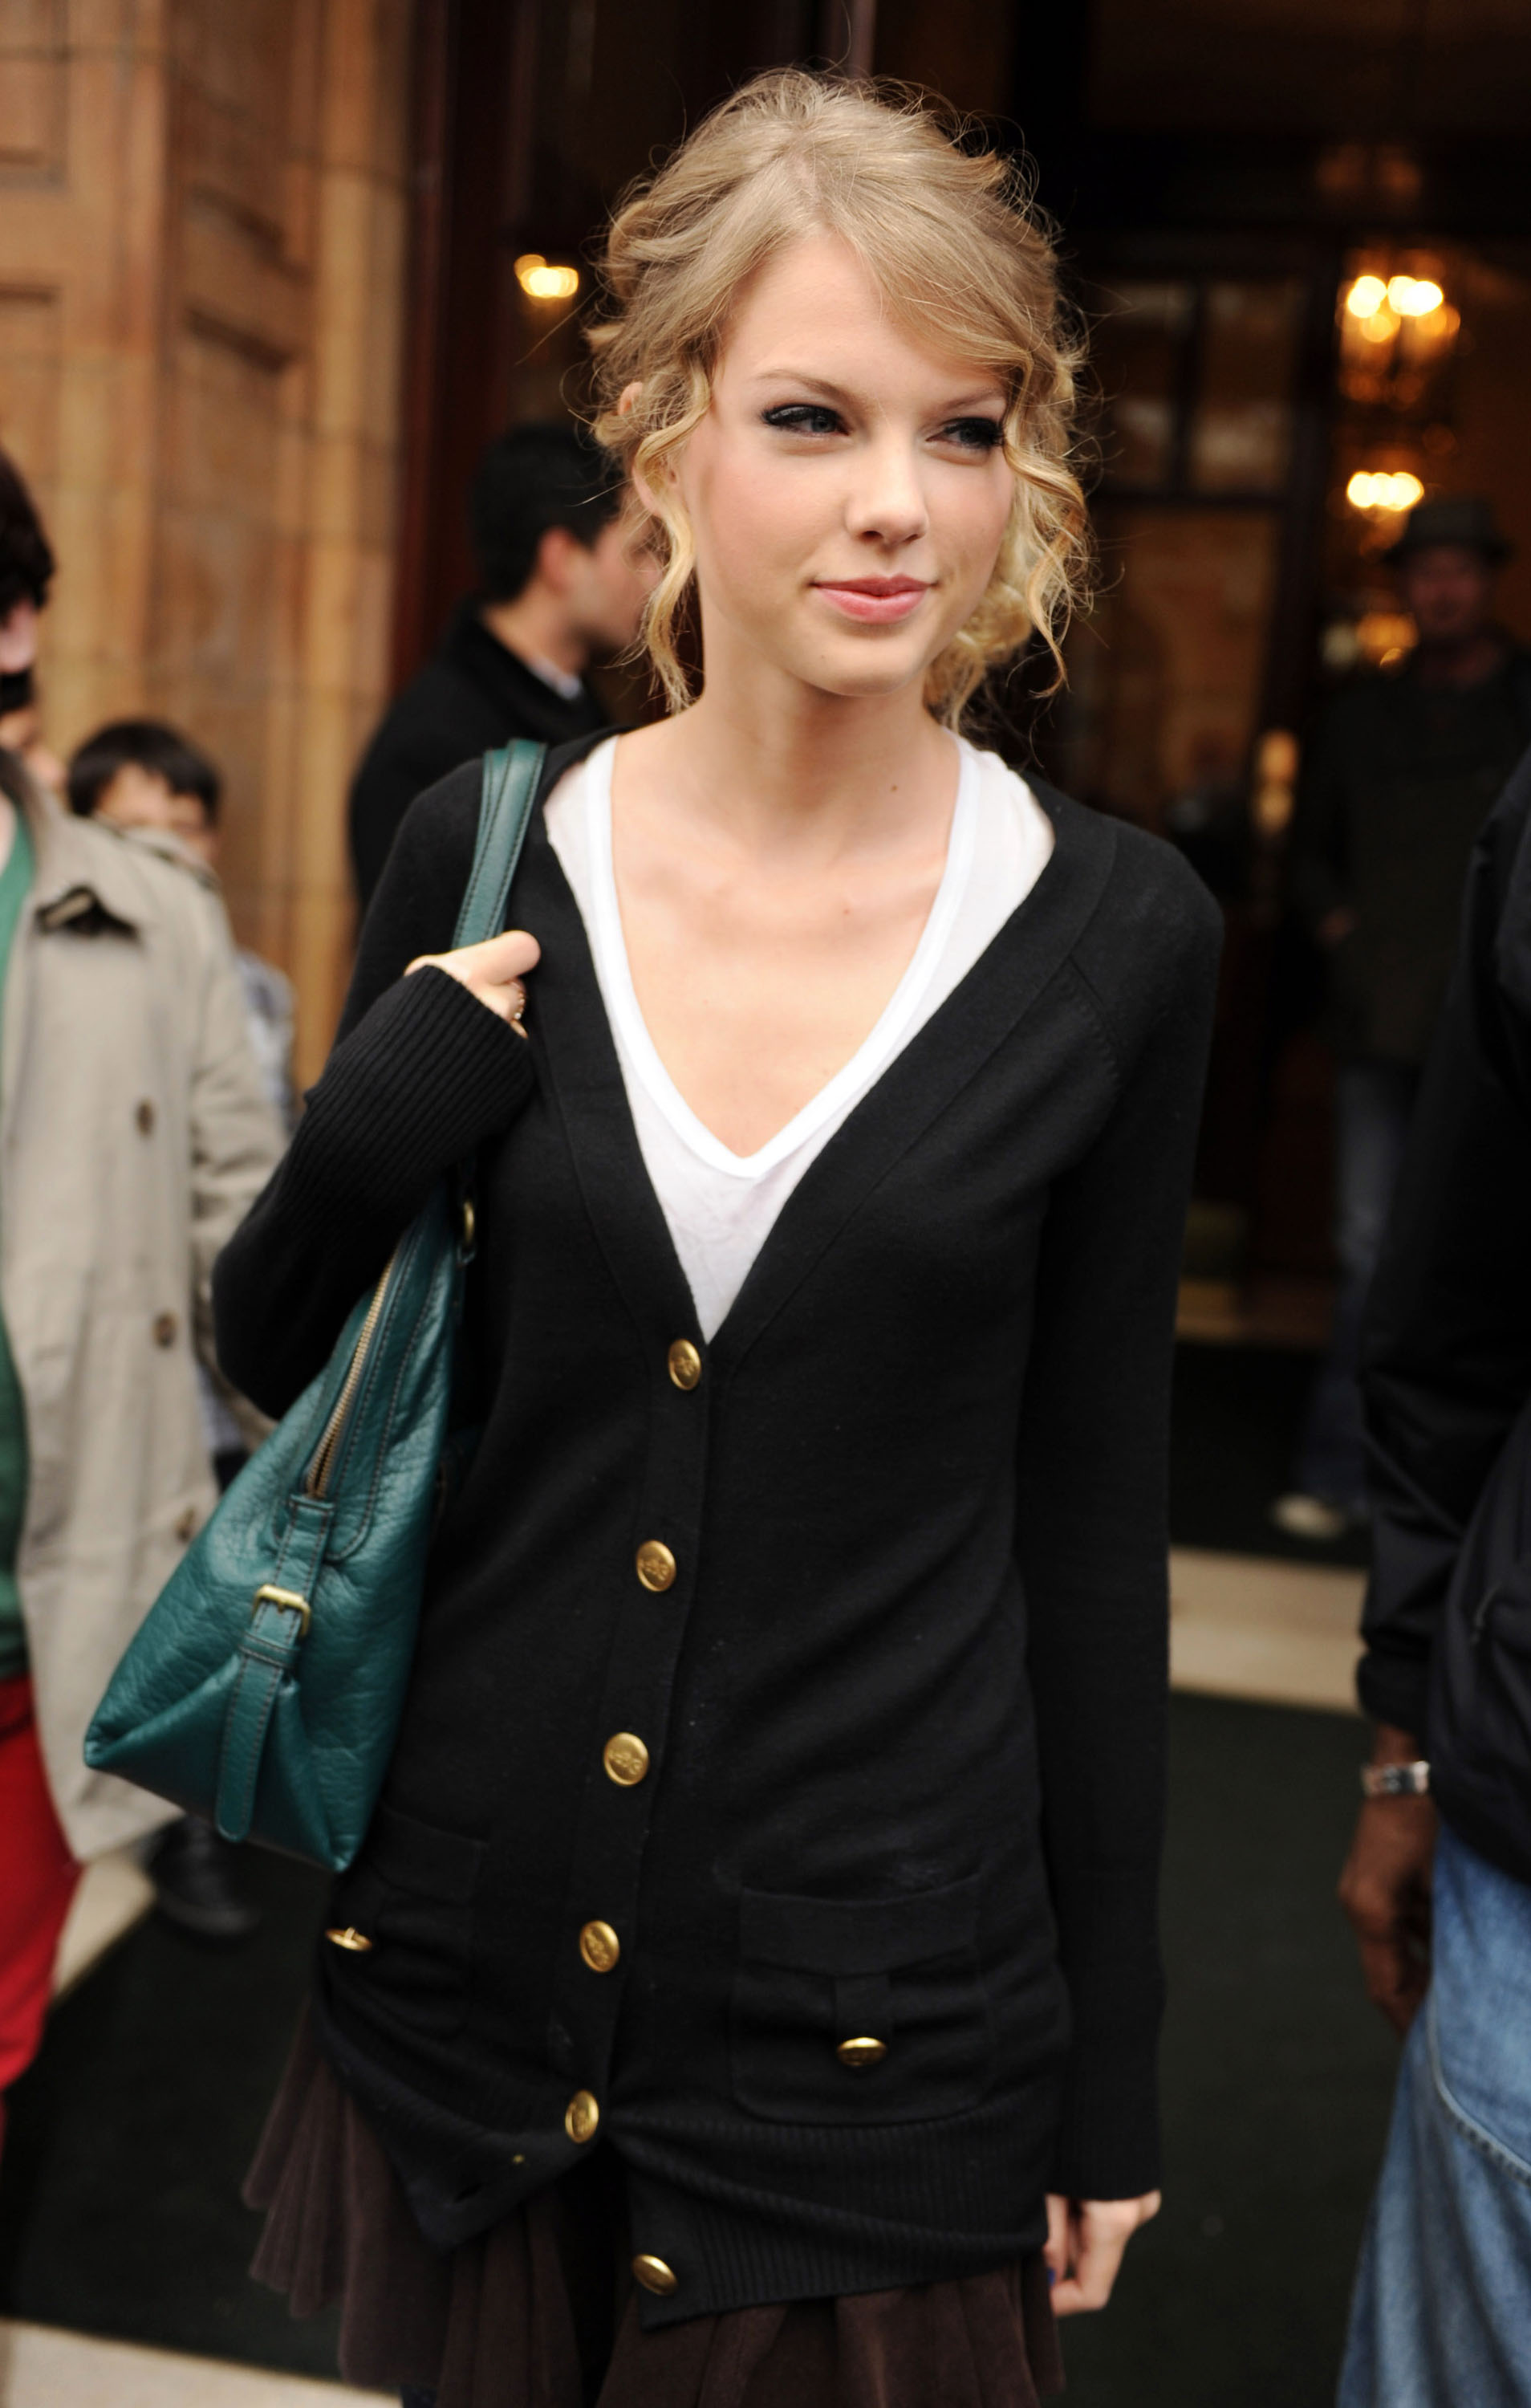 Taylor Swift buys a new condo with her hard earned cash!